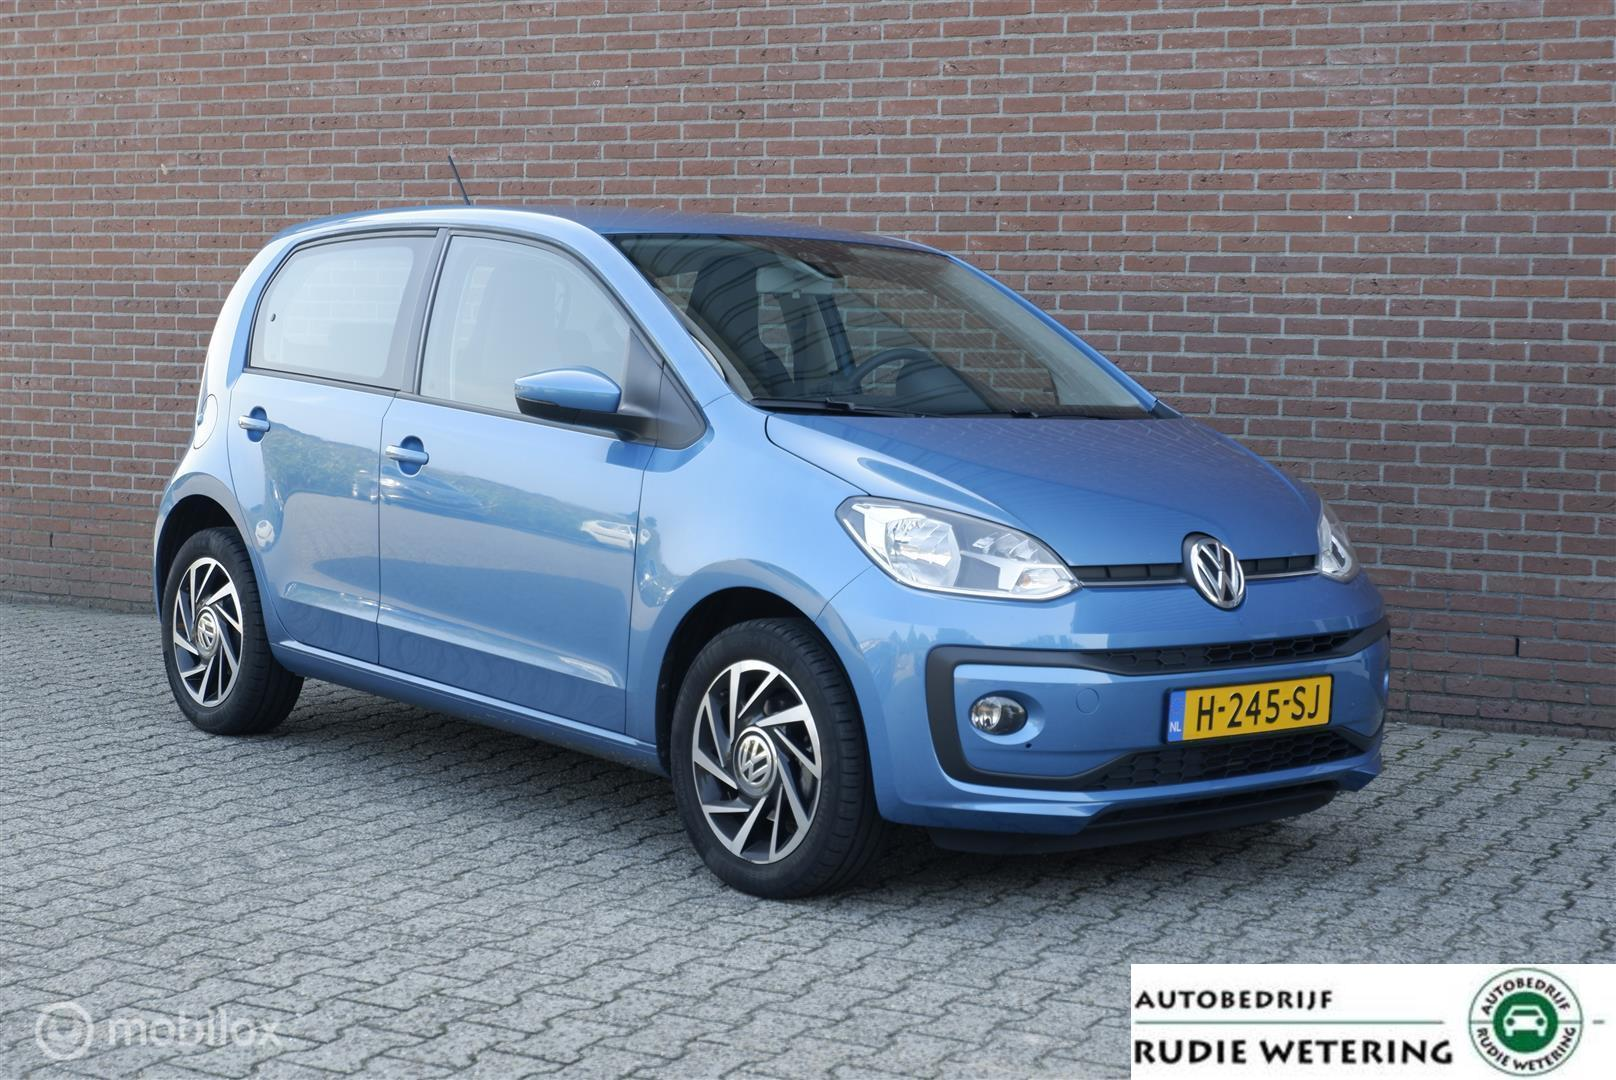 Volkswagen Up! 1.0 BMT 60PK 5Drs. Move Up! airco/cruise/tel/dab/pdc/lmv15